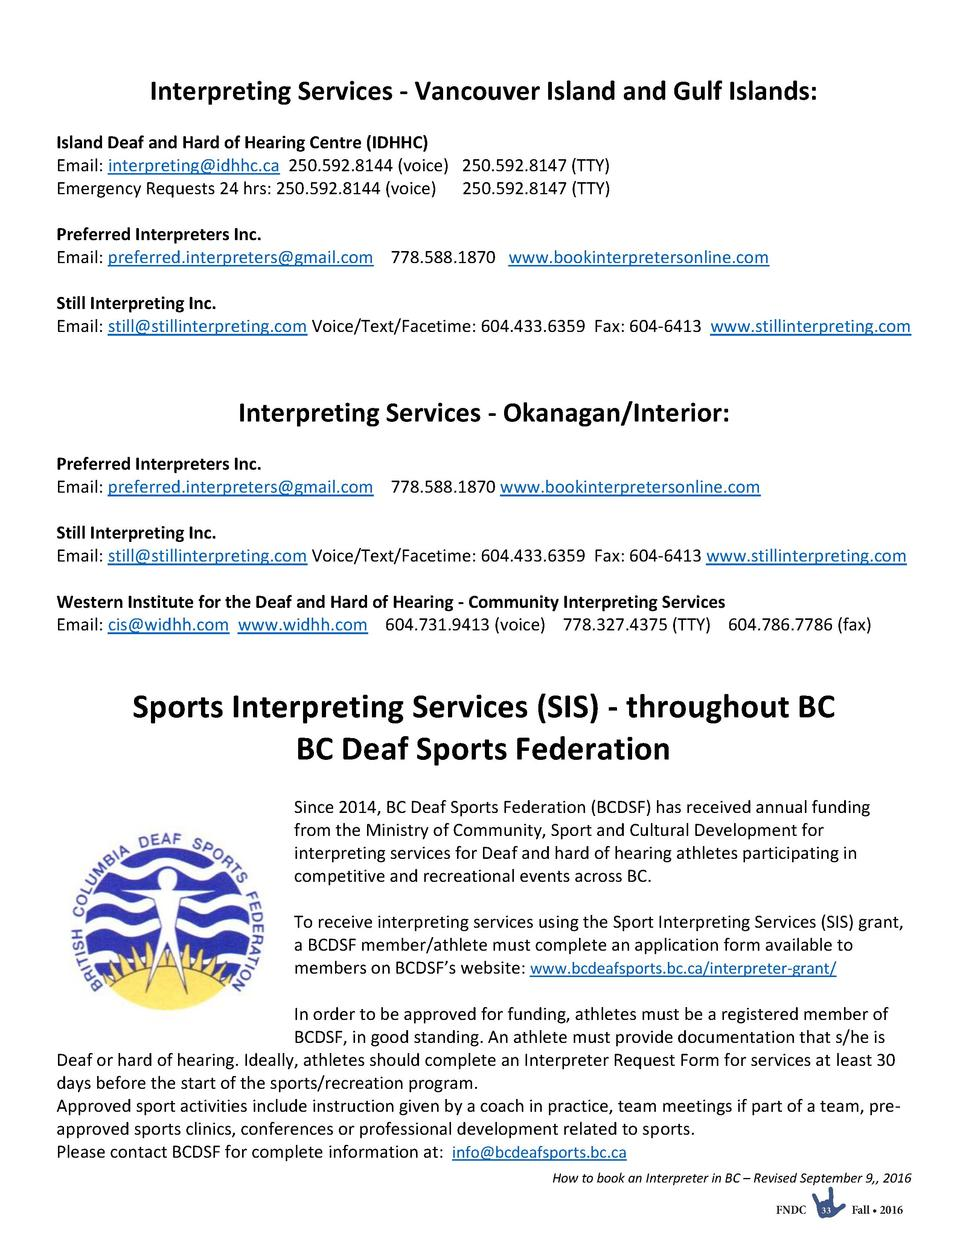 Interpreting Services - Vancouver Island and Gulf Islands  Island Deaf and Hard of Hearing Centre  IDHHC  Email  interpret...